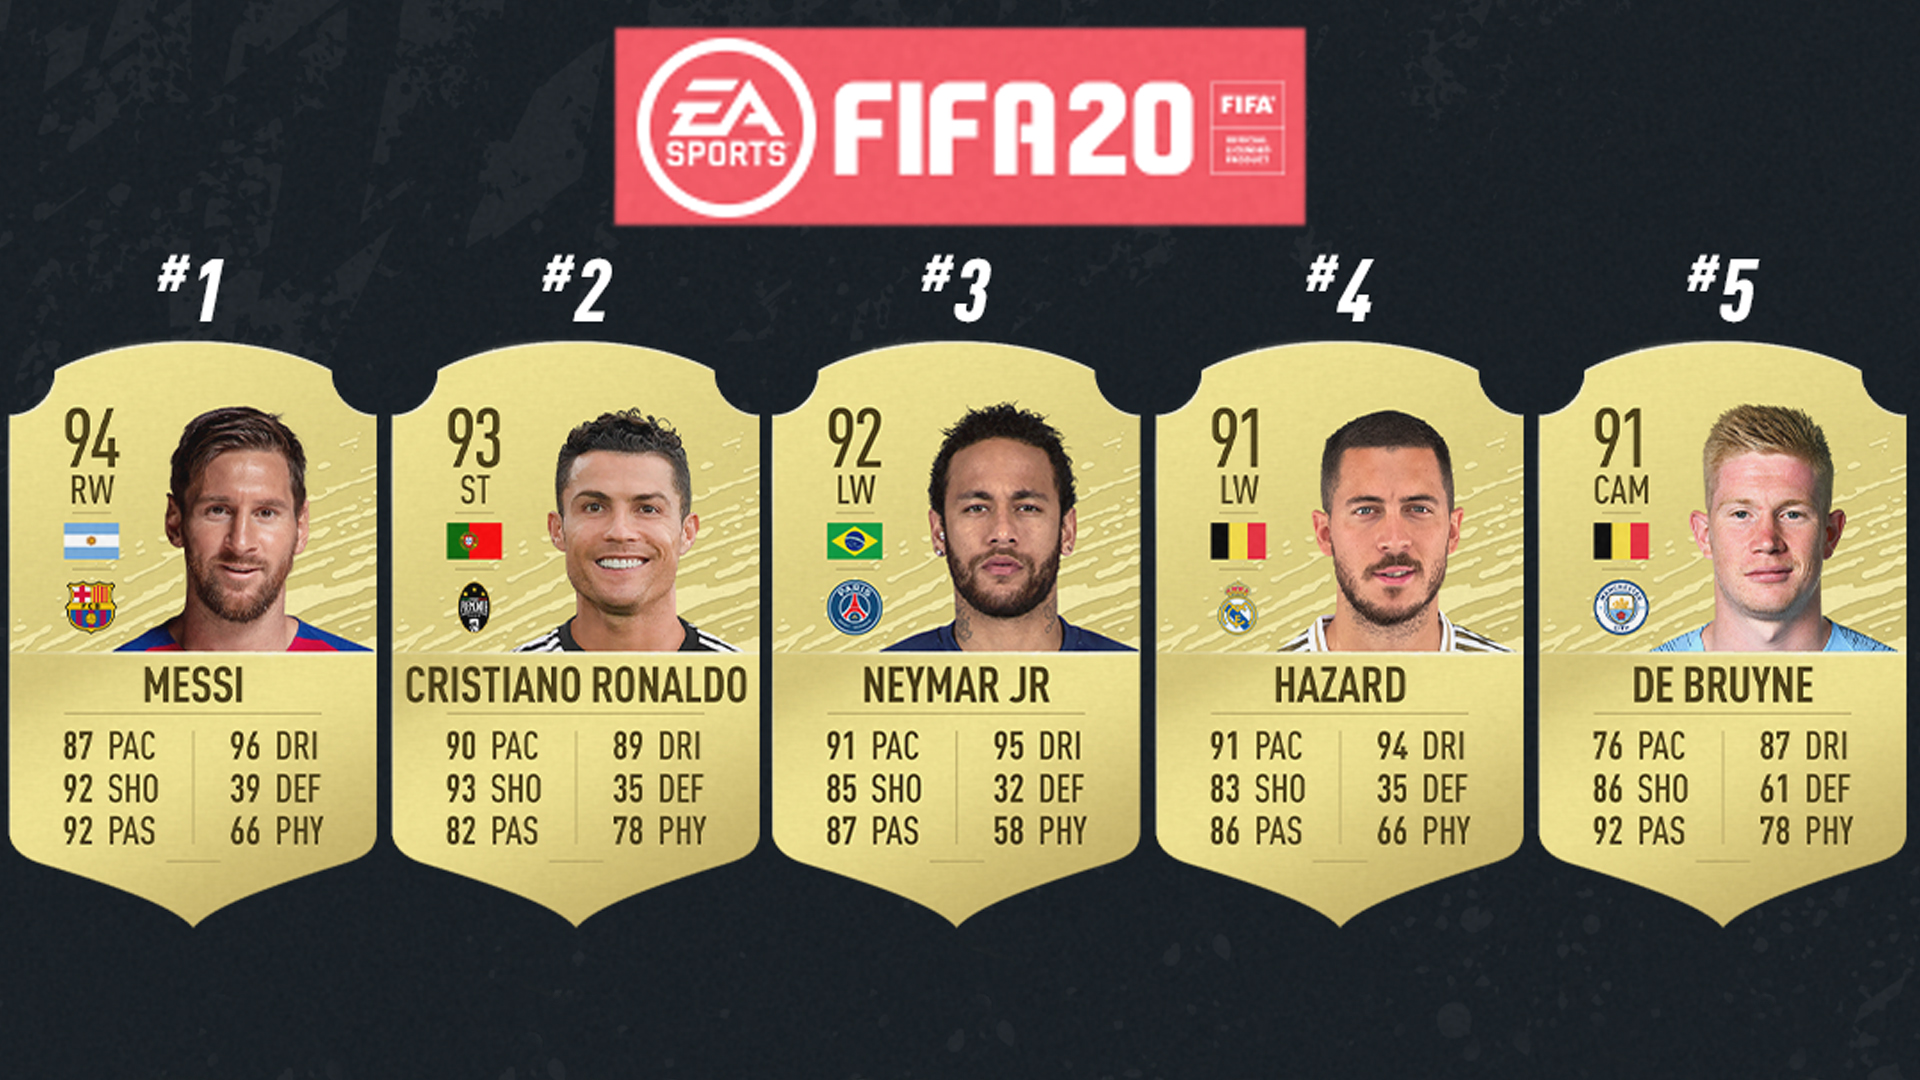 FIFA 20 Player Ratings: Messi, Cristiano Ronaldo, Neymar & top 100 players ranked